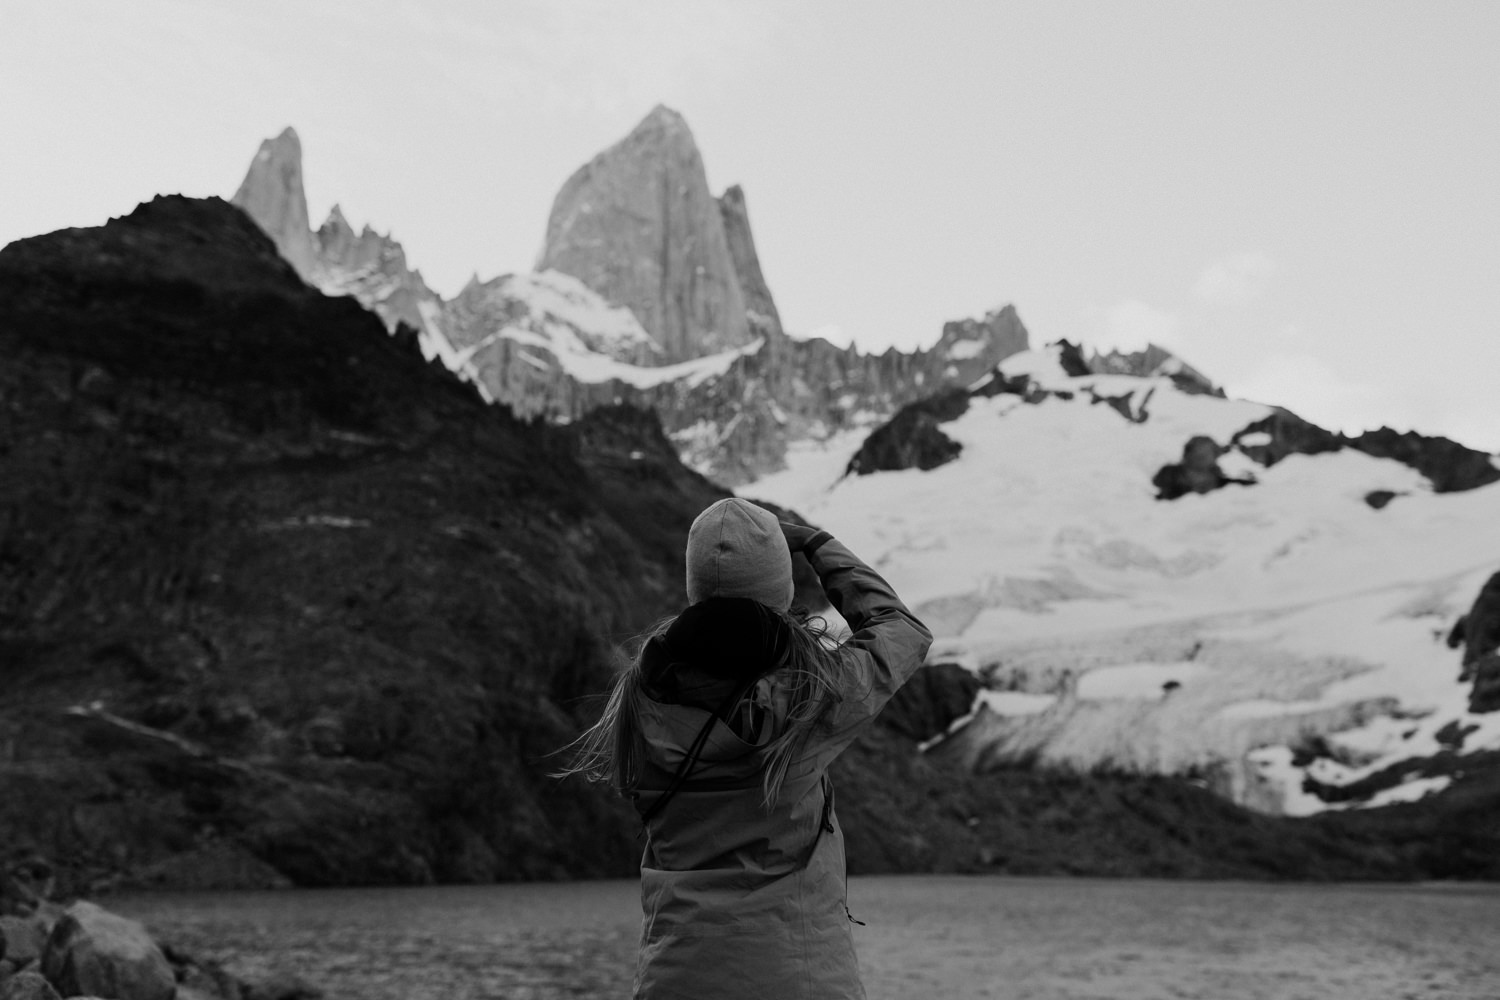 patagonia-adventure-photographer-112.jpg